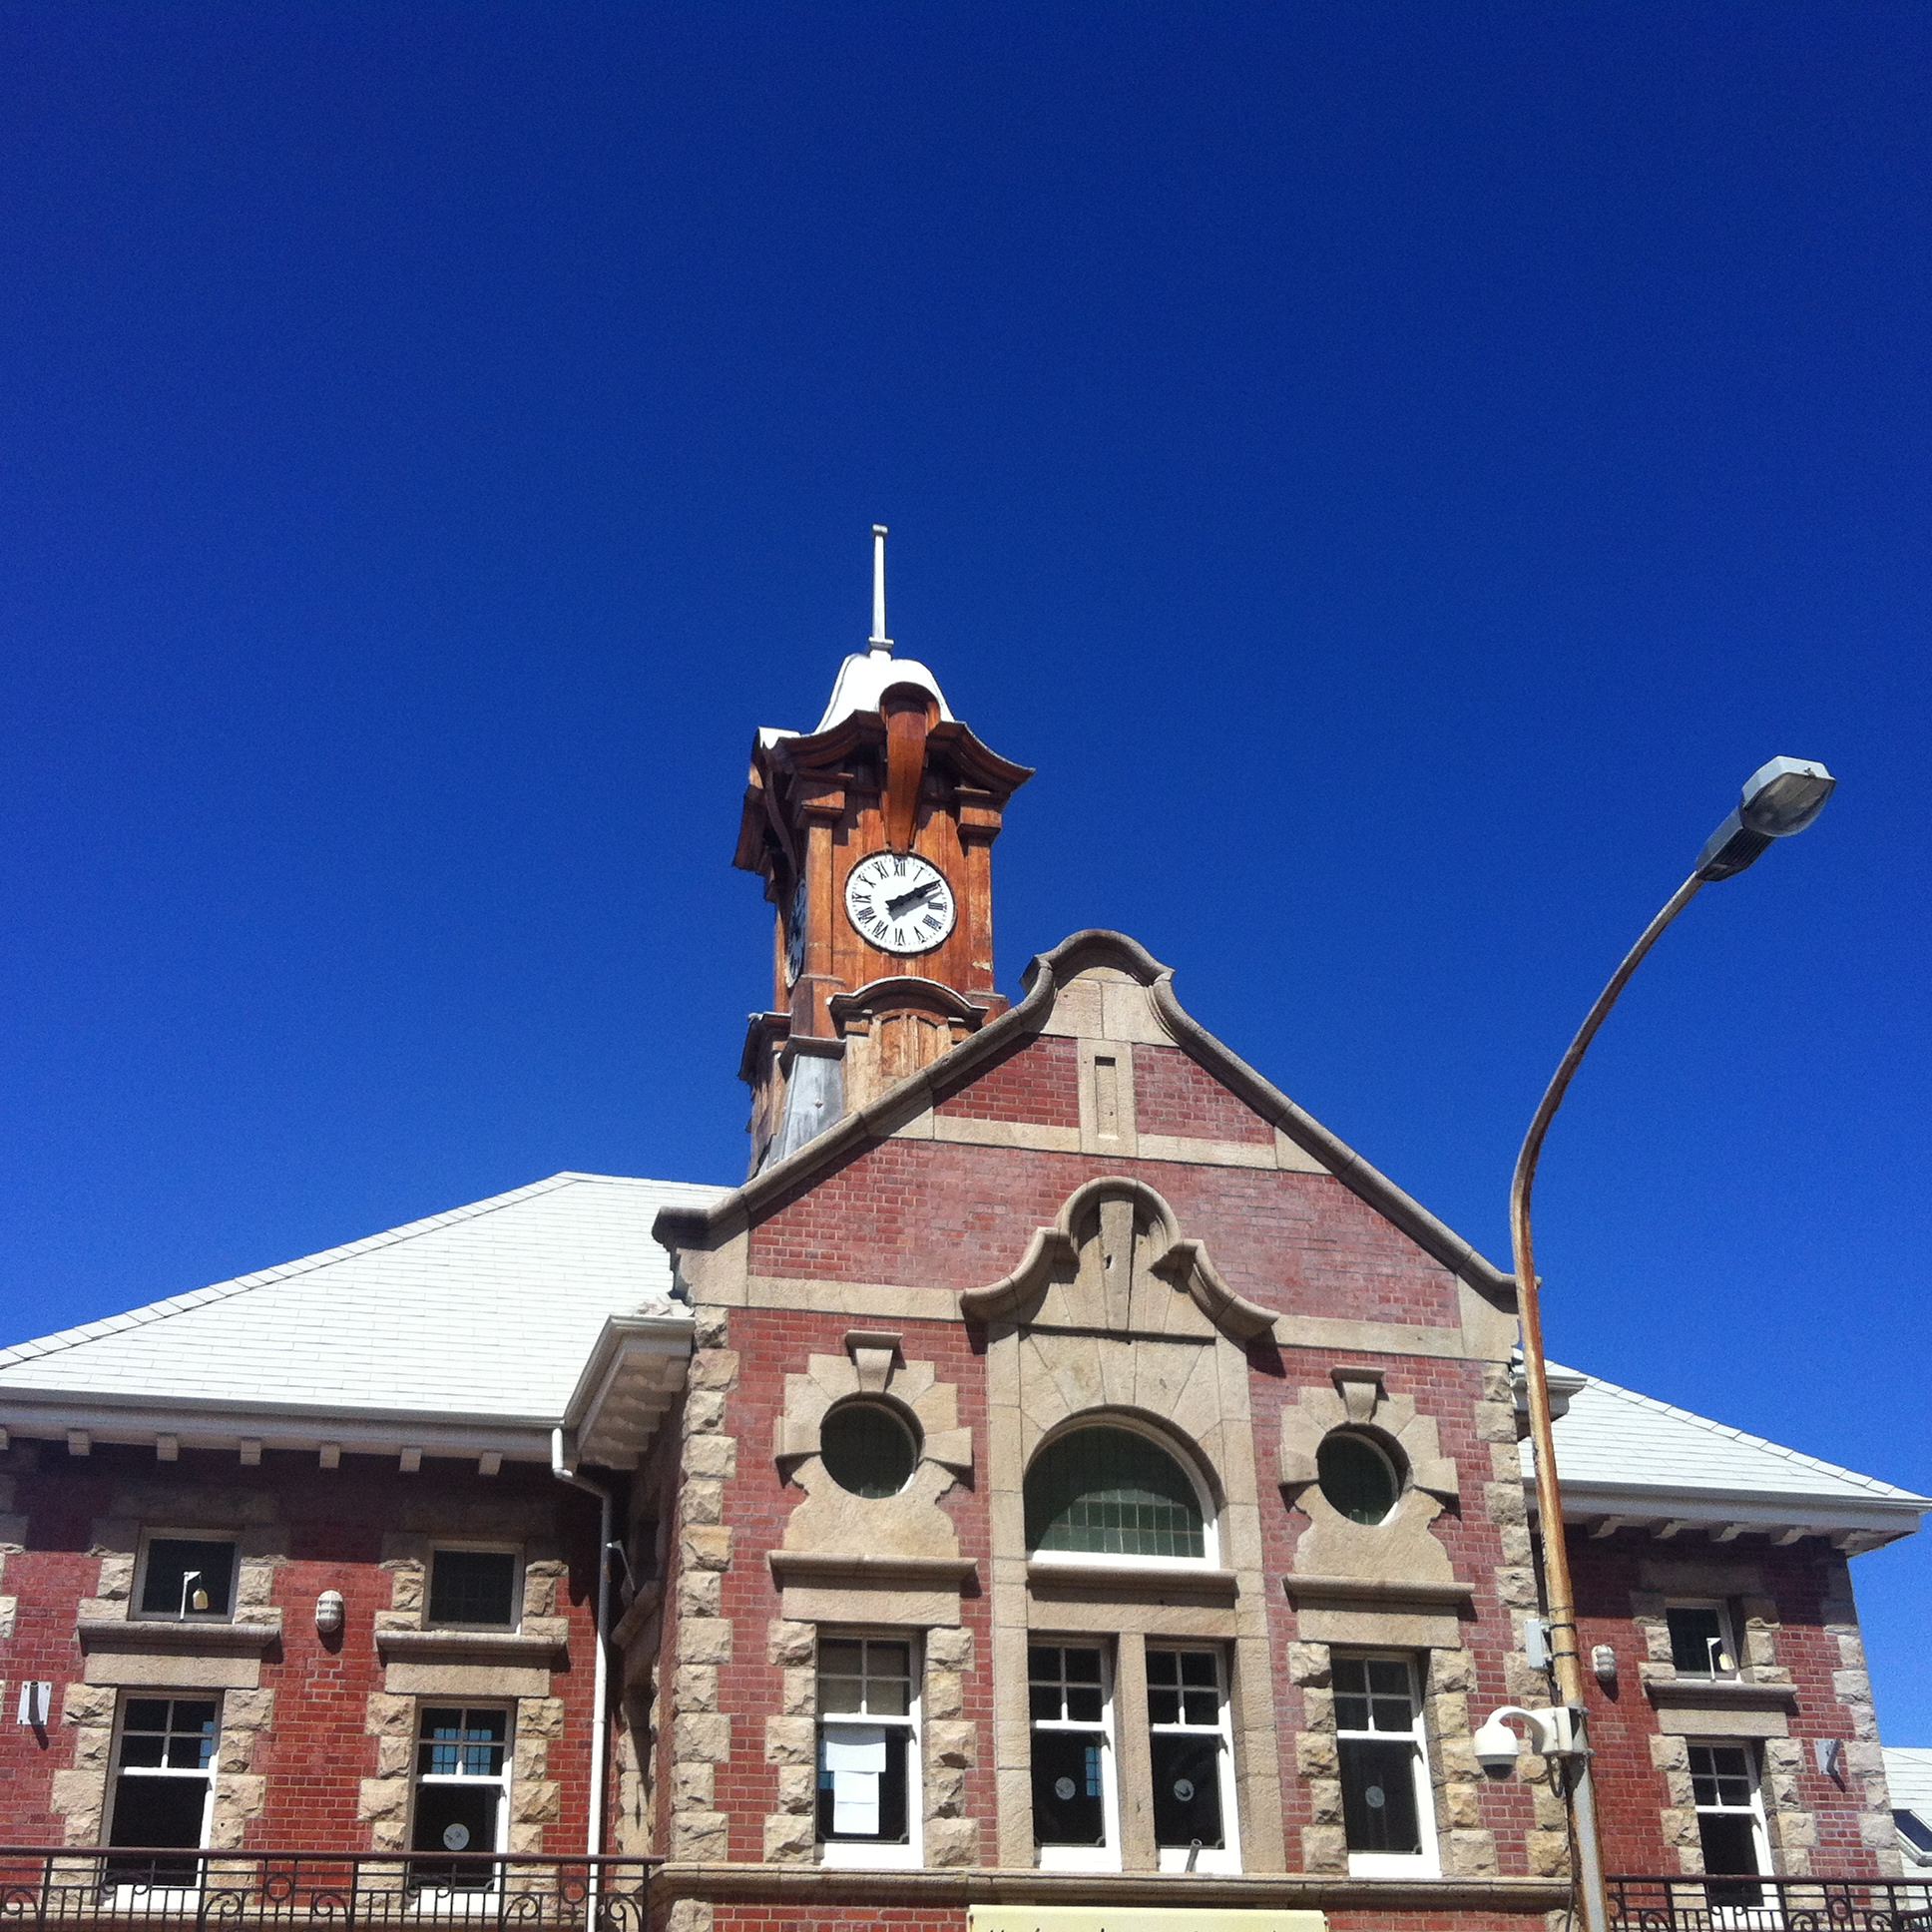 I crossed Main Road to get this shot of the upper part of the Muizenberg Station. I especially love the wooden clocktower, but there are loads of great architectural features you can capture in and around the station.